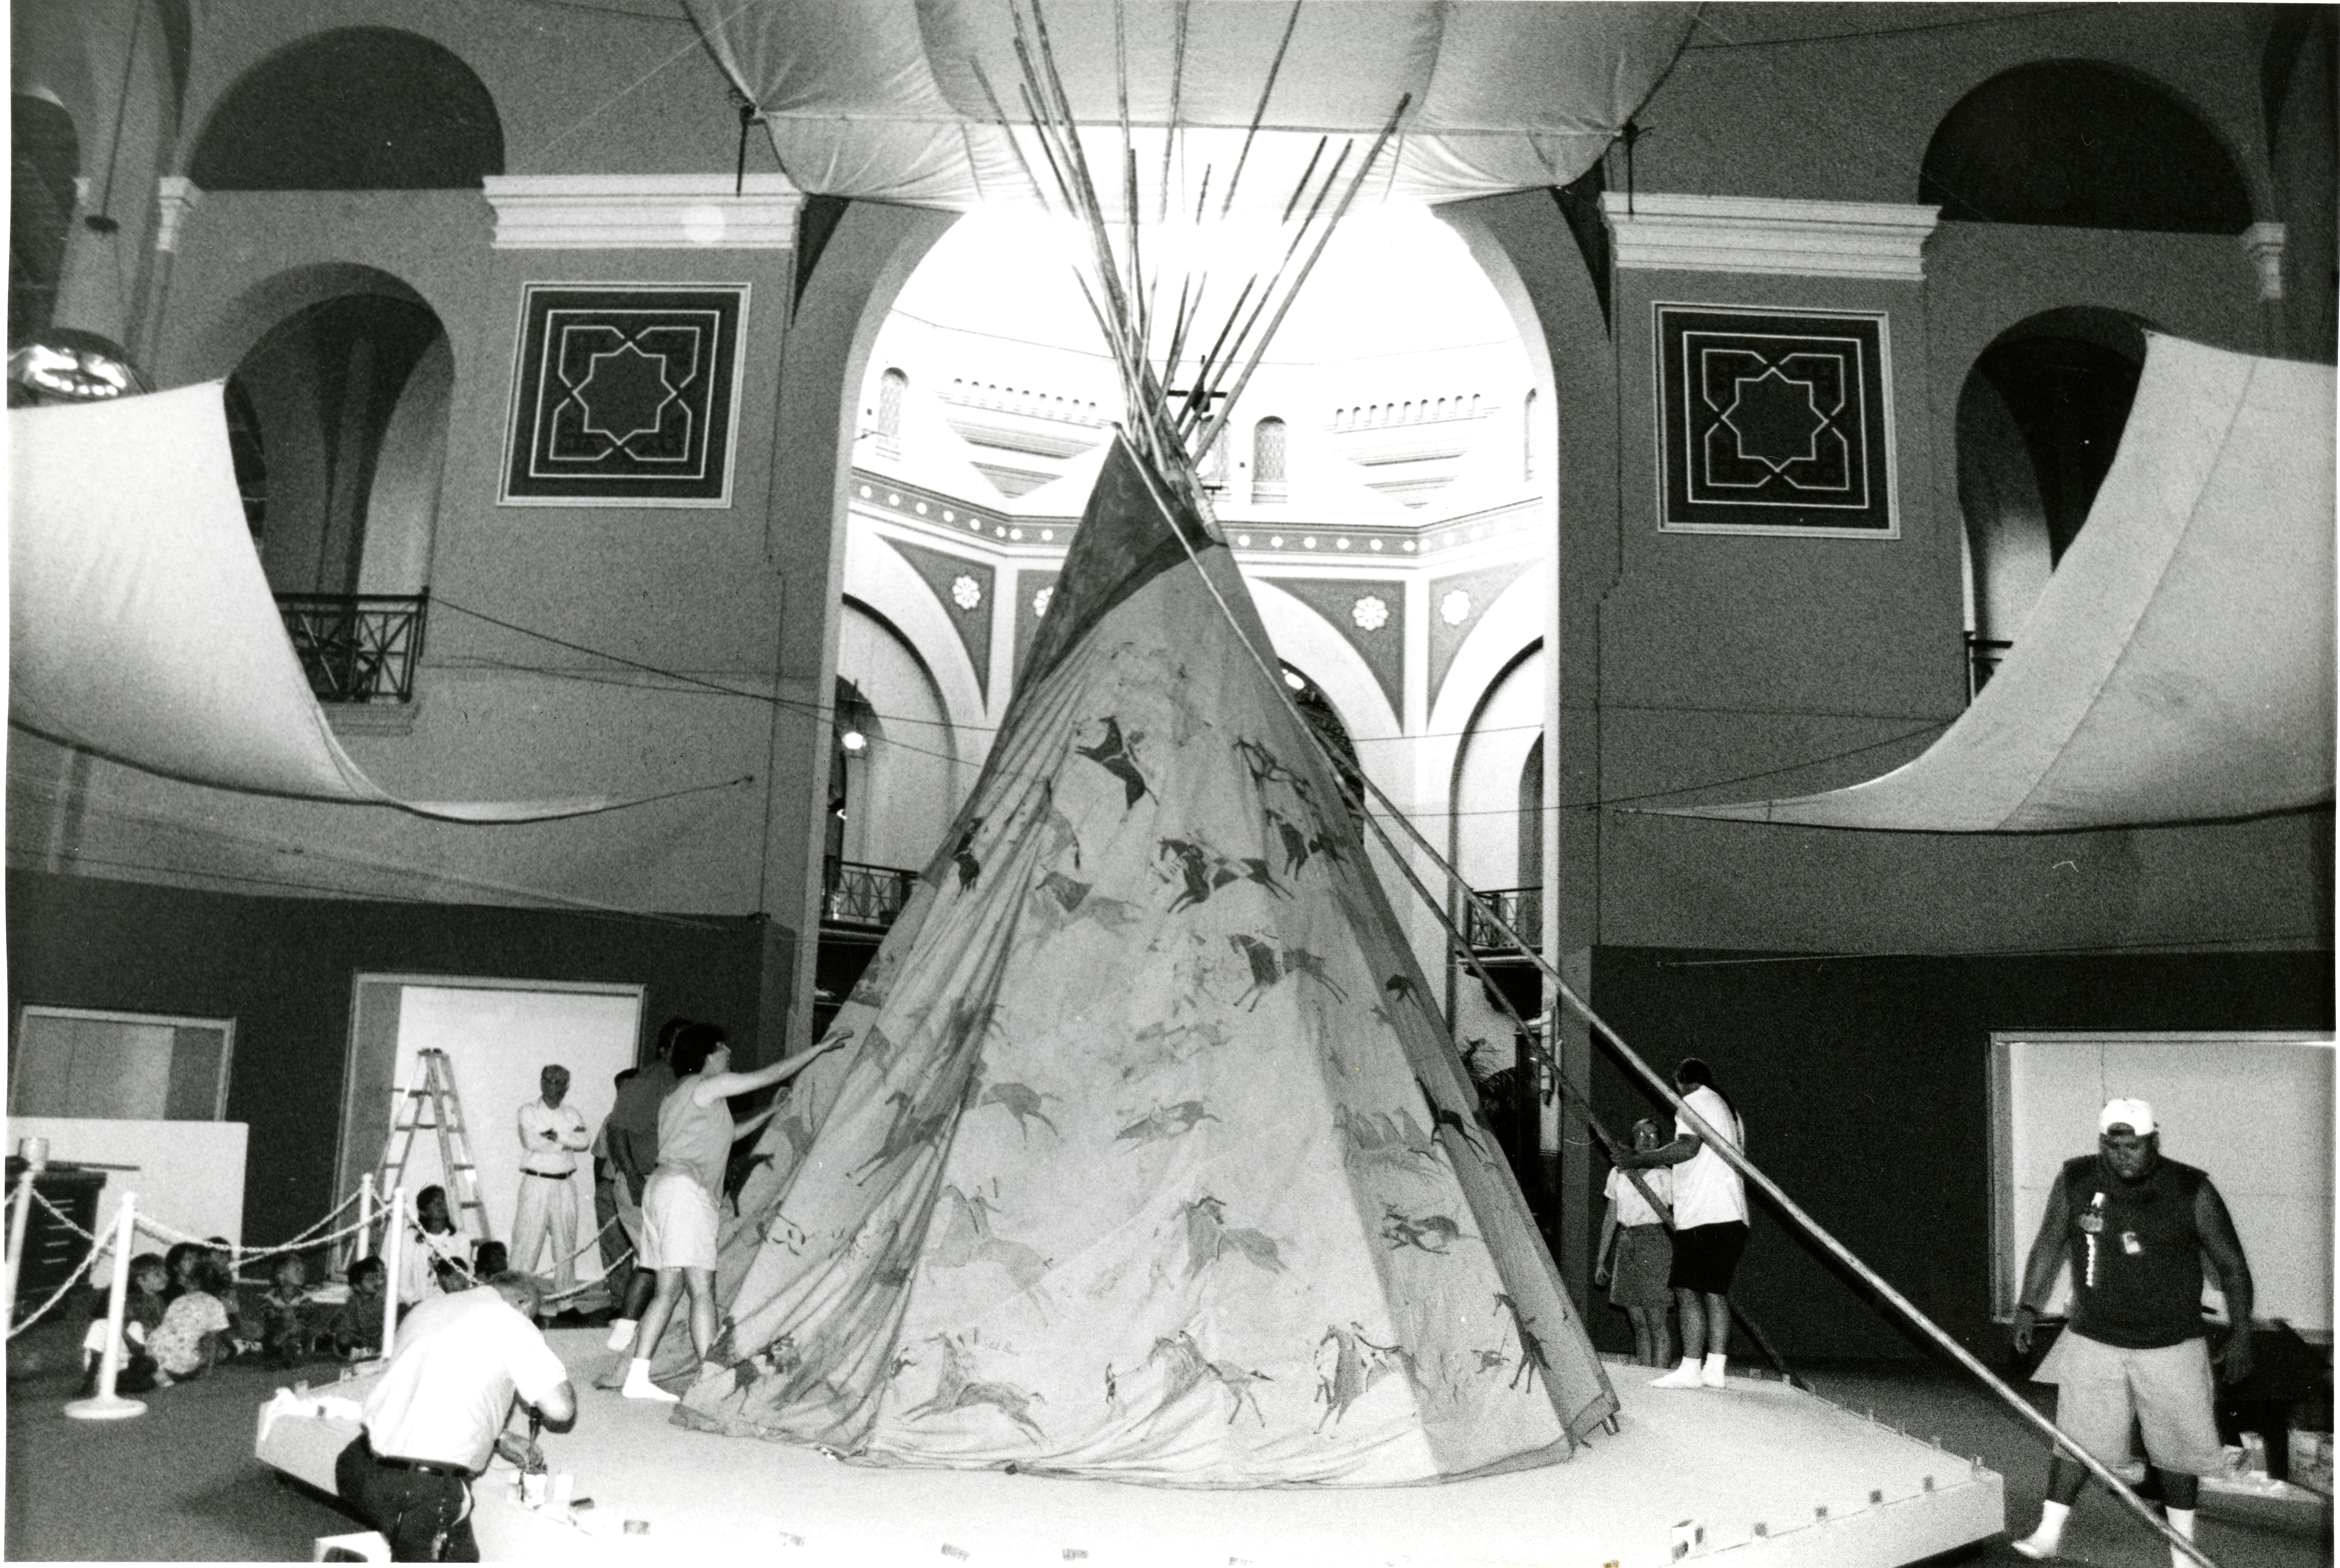 Installation of Dakota Tepee, Arts and Industries Building, 1996. Accession 01-081, Smithsonian Institution Archives, Neg. no. SIA2011-2389.